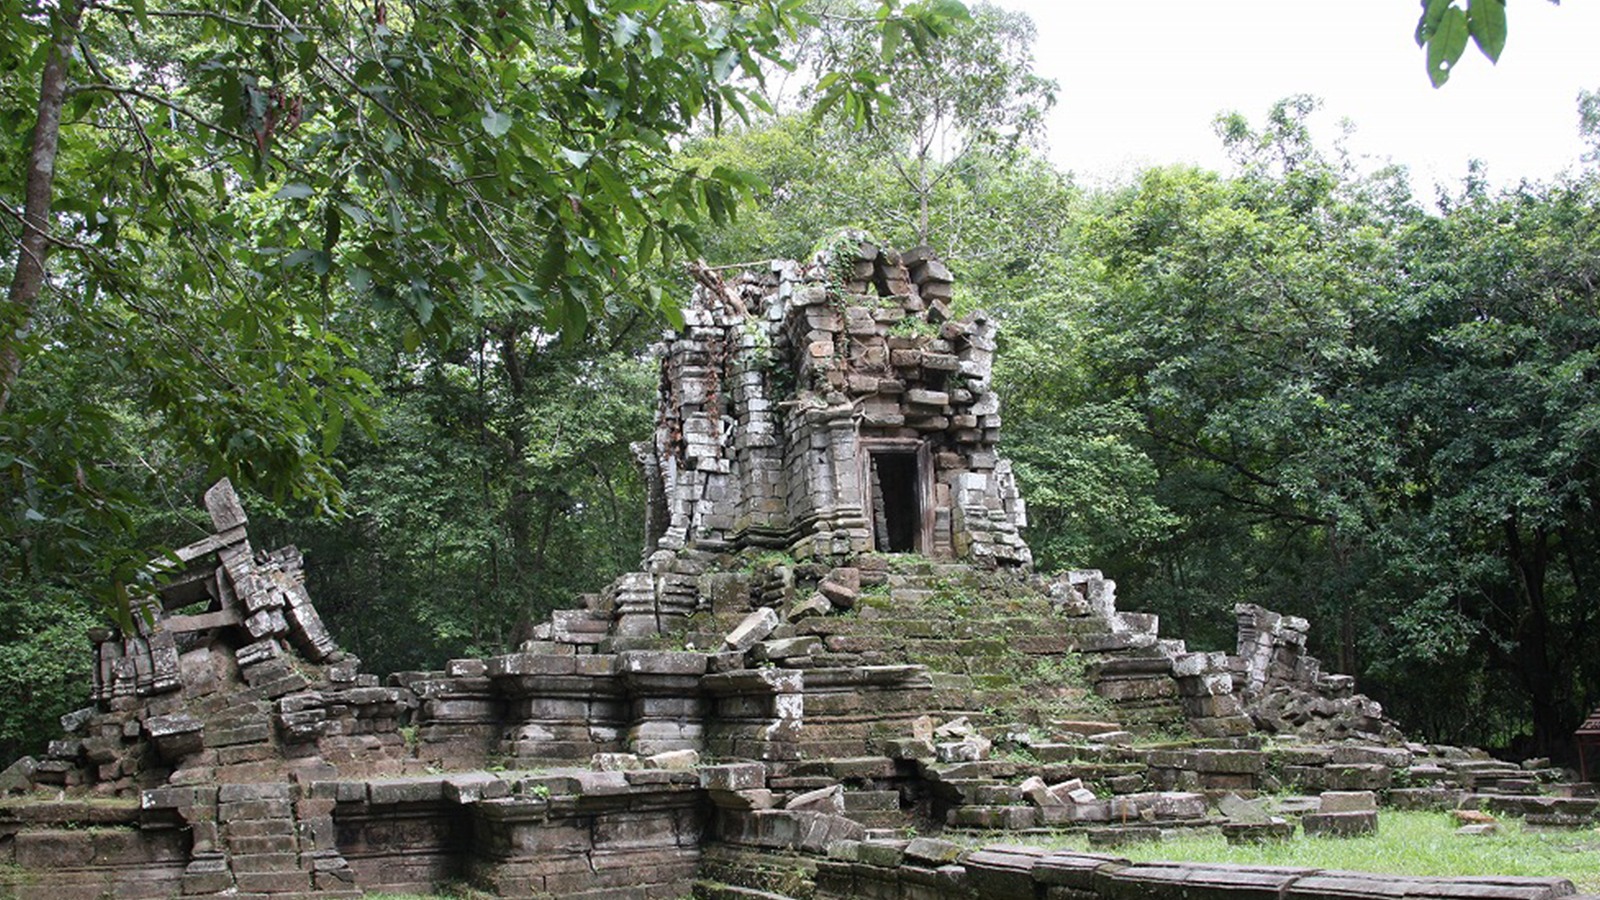 Survey and conservation of the Western Prasat Top Site